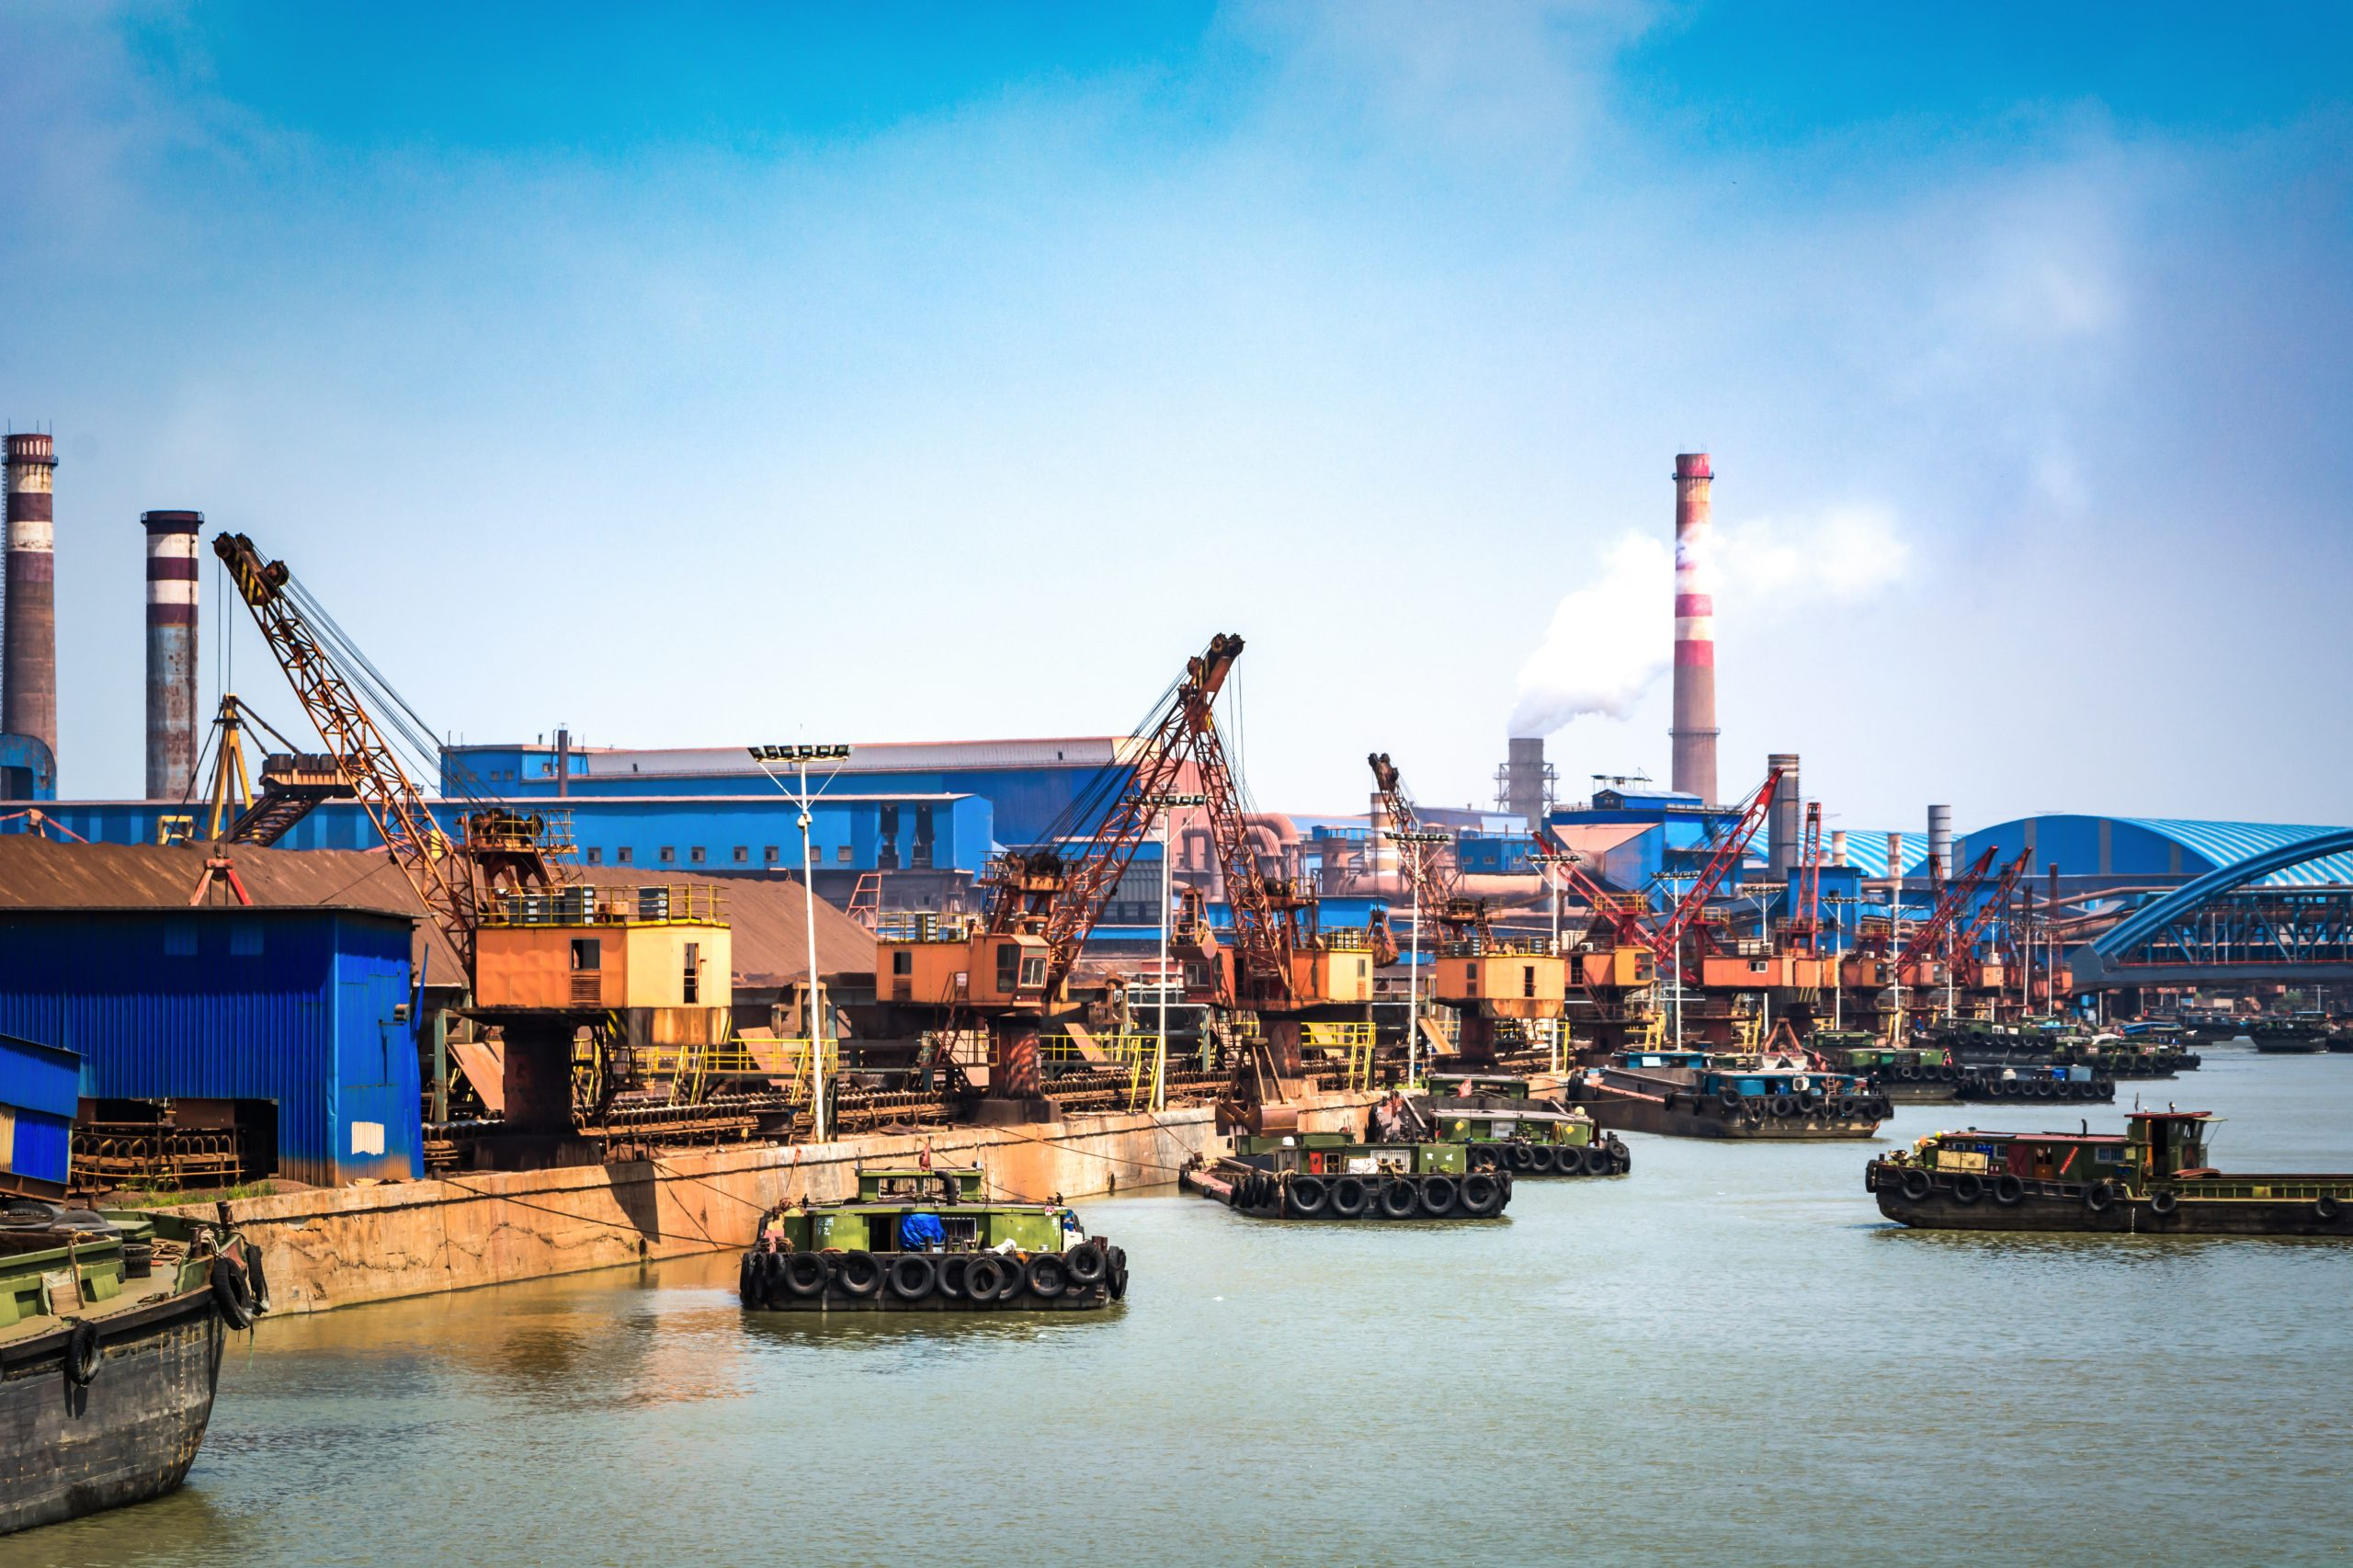 petroleum gas container ship and oil refinery background for energy nautical transportation